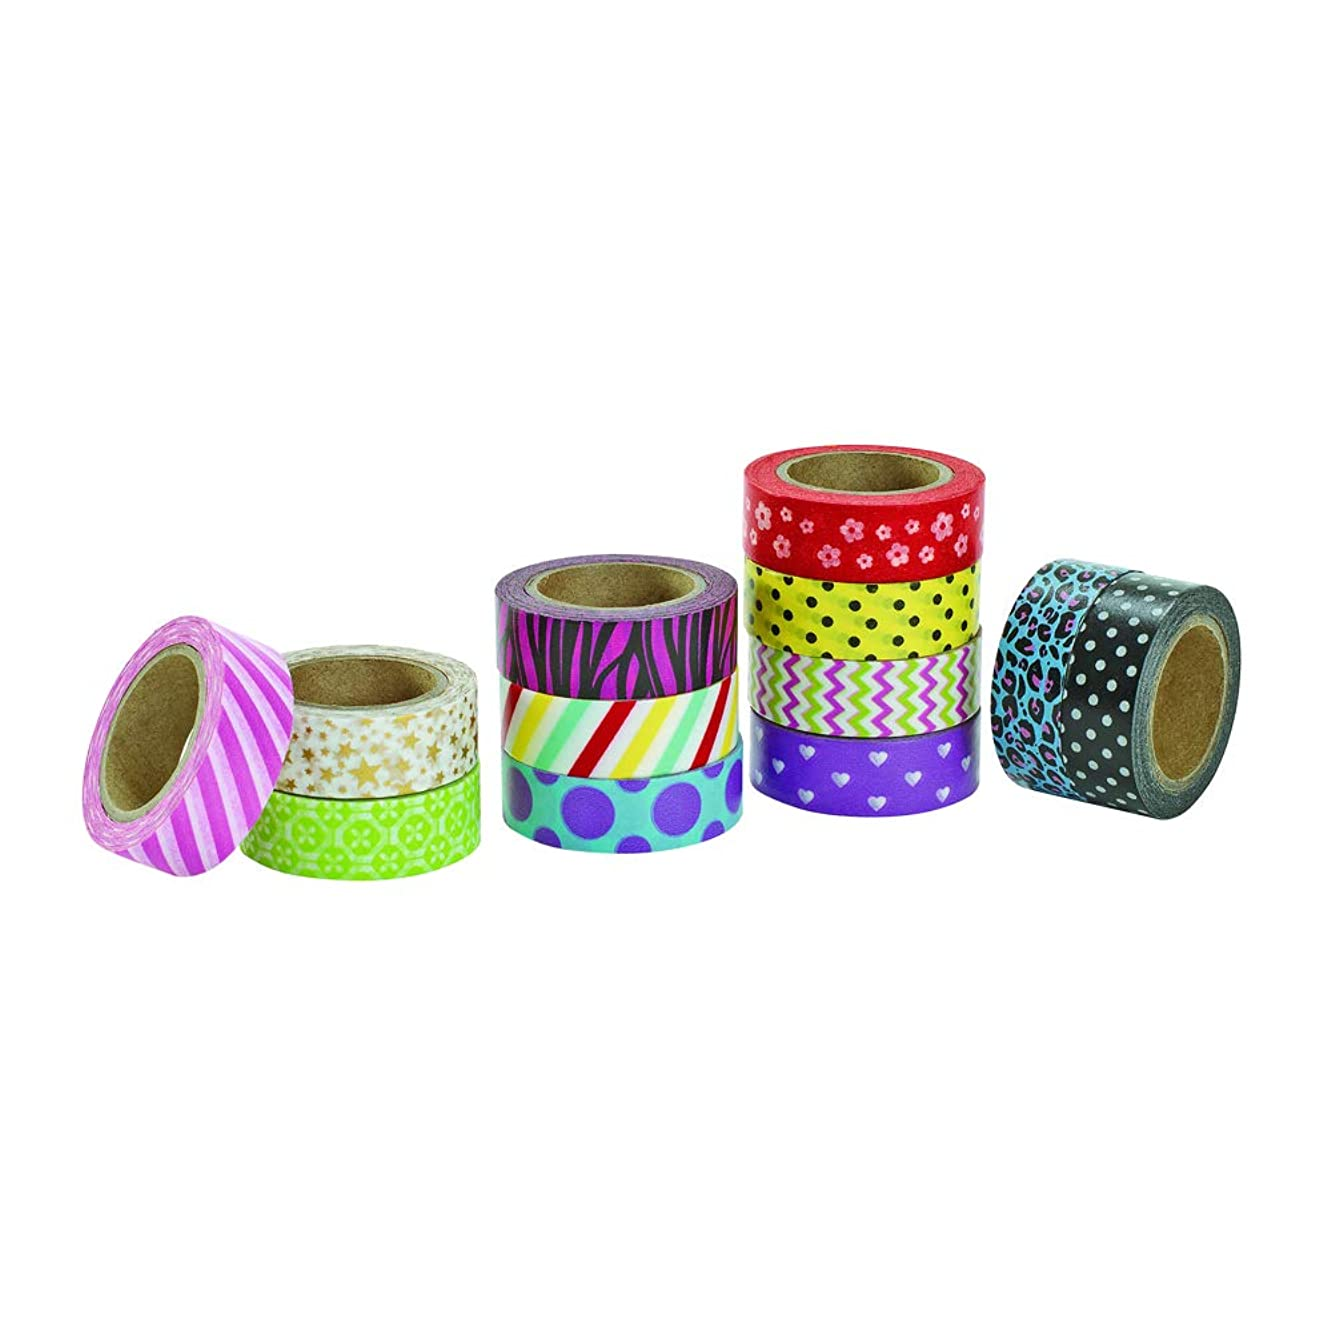 Colorations WASHI Whimsical Printed Craft Tape (Pack of 12)